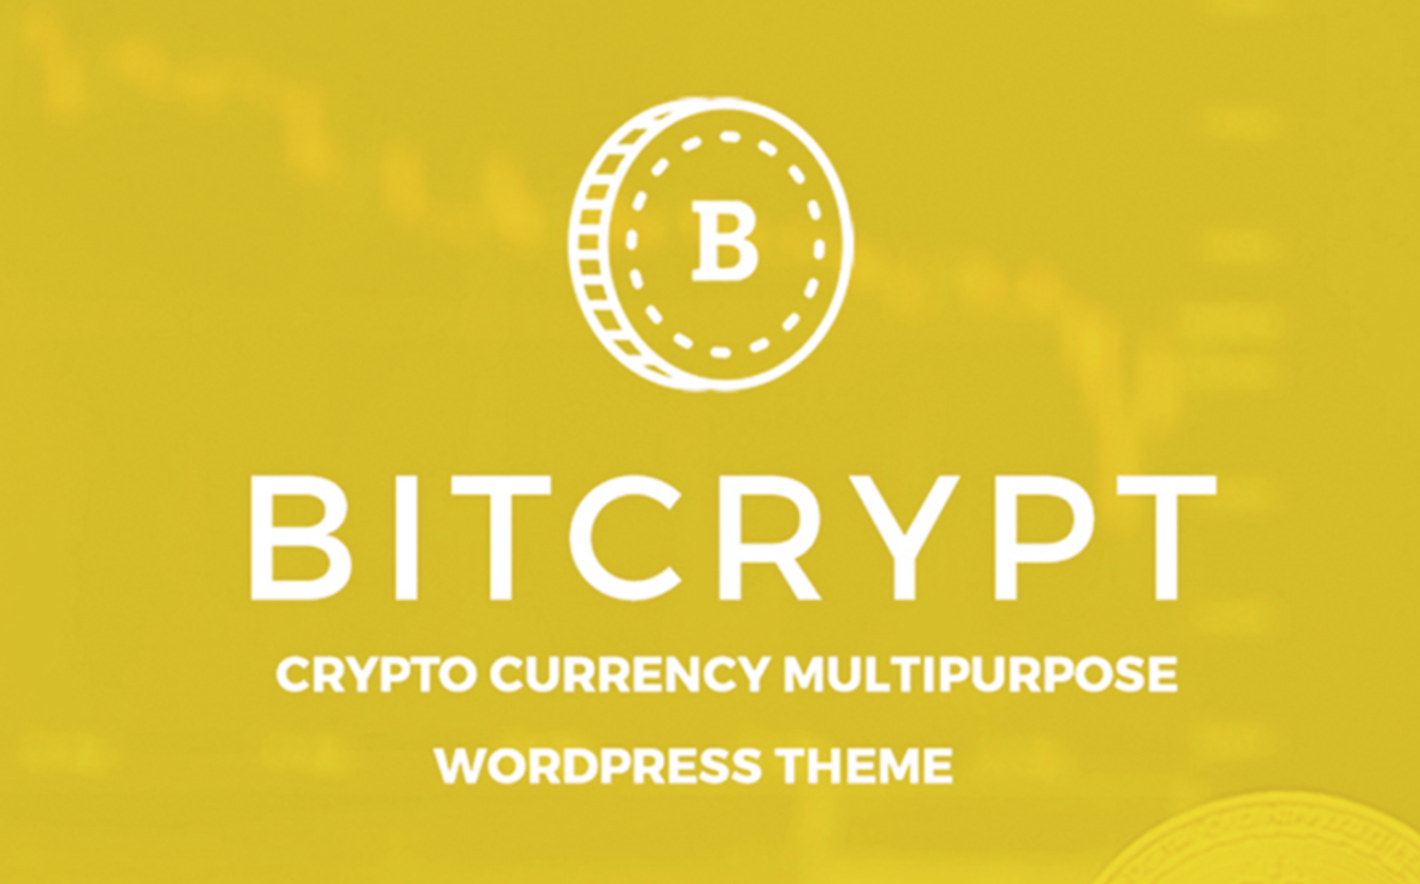 10 Free & Premium Cryptocurrency WordPress Themes: Features to Look For